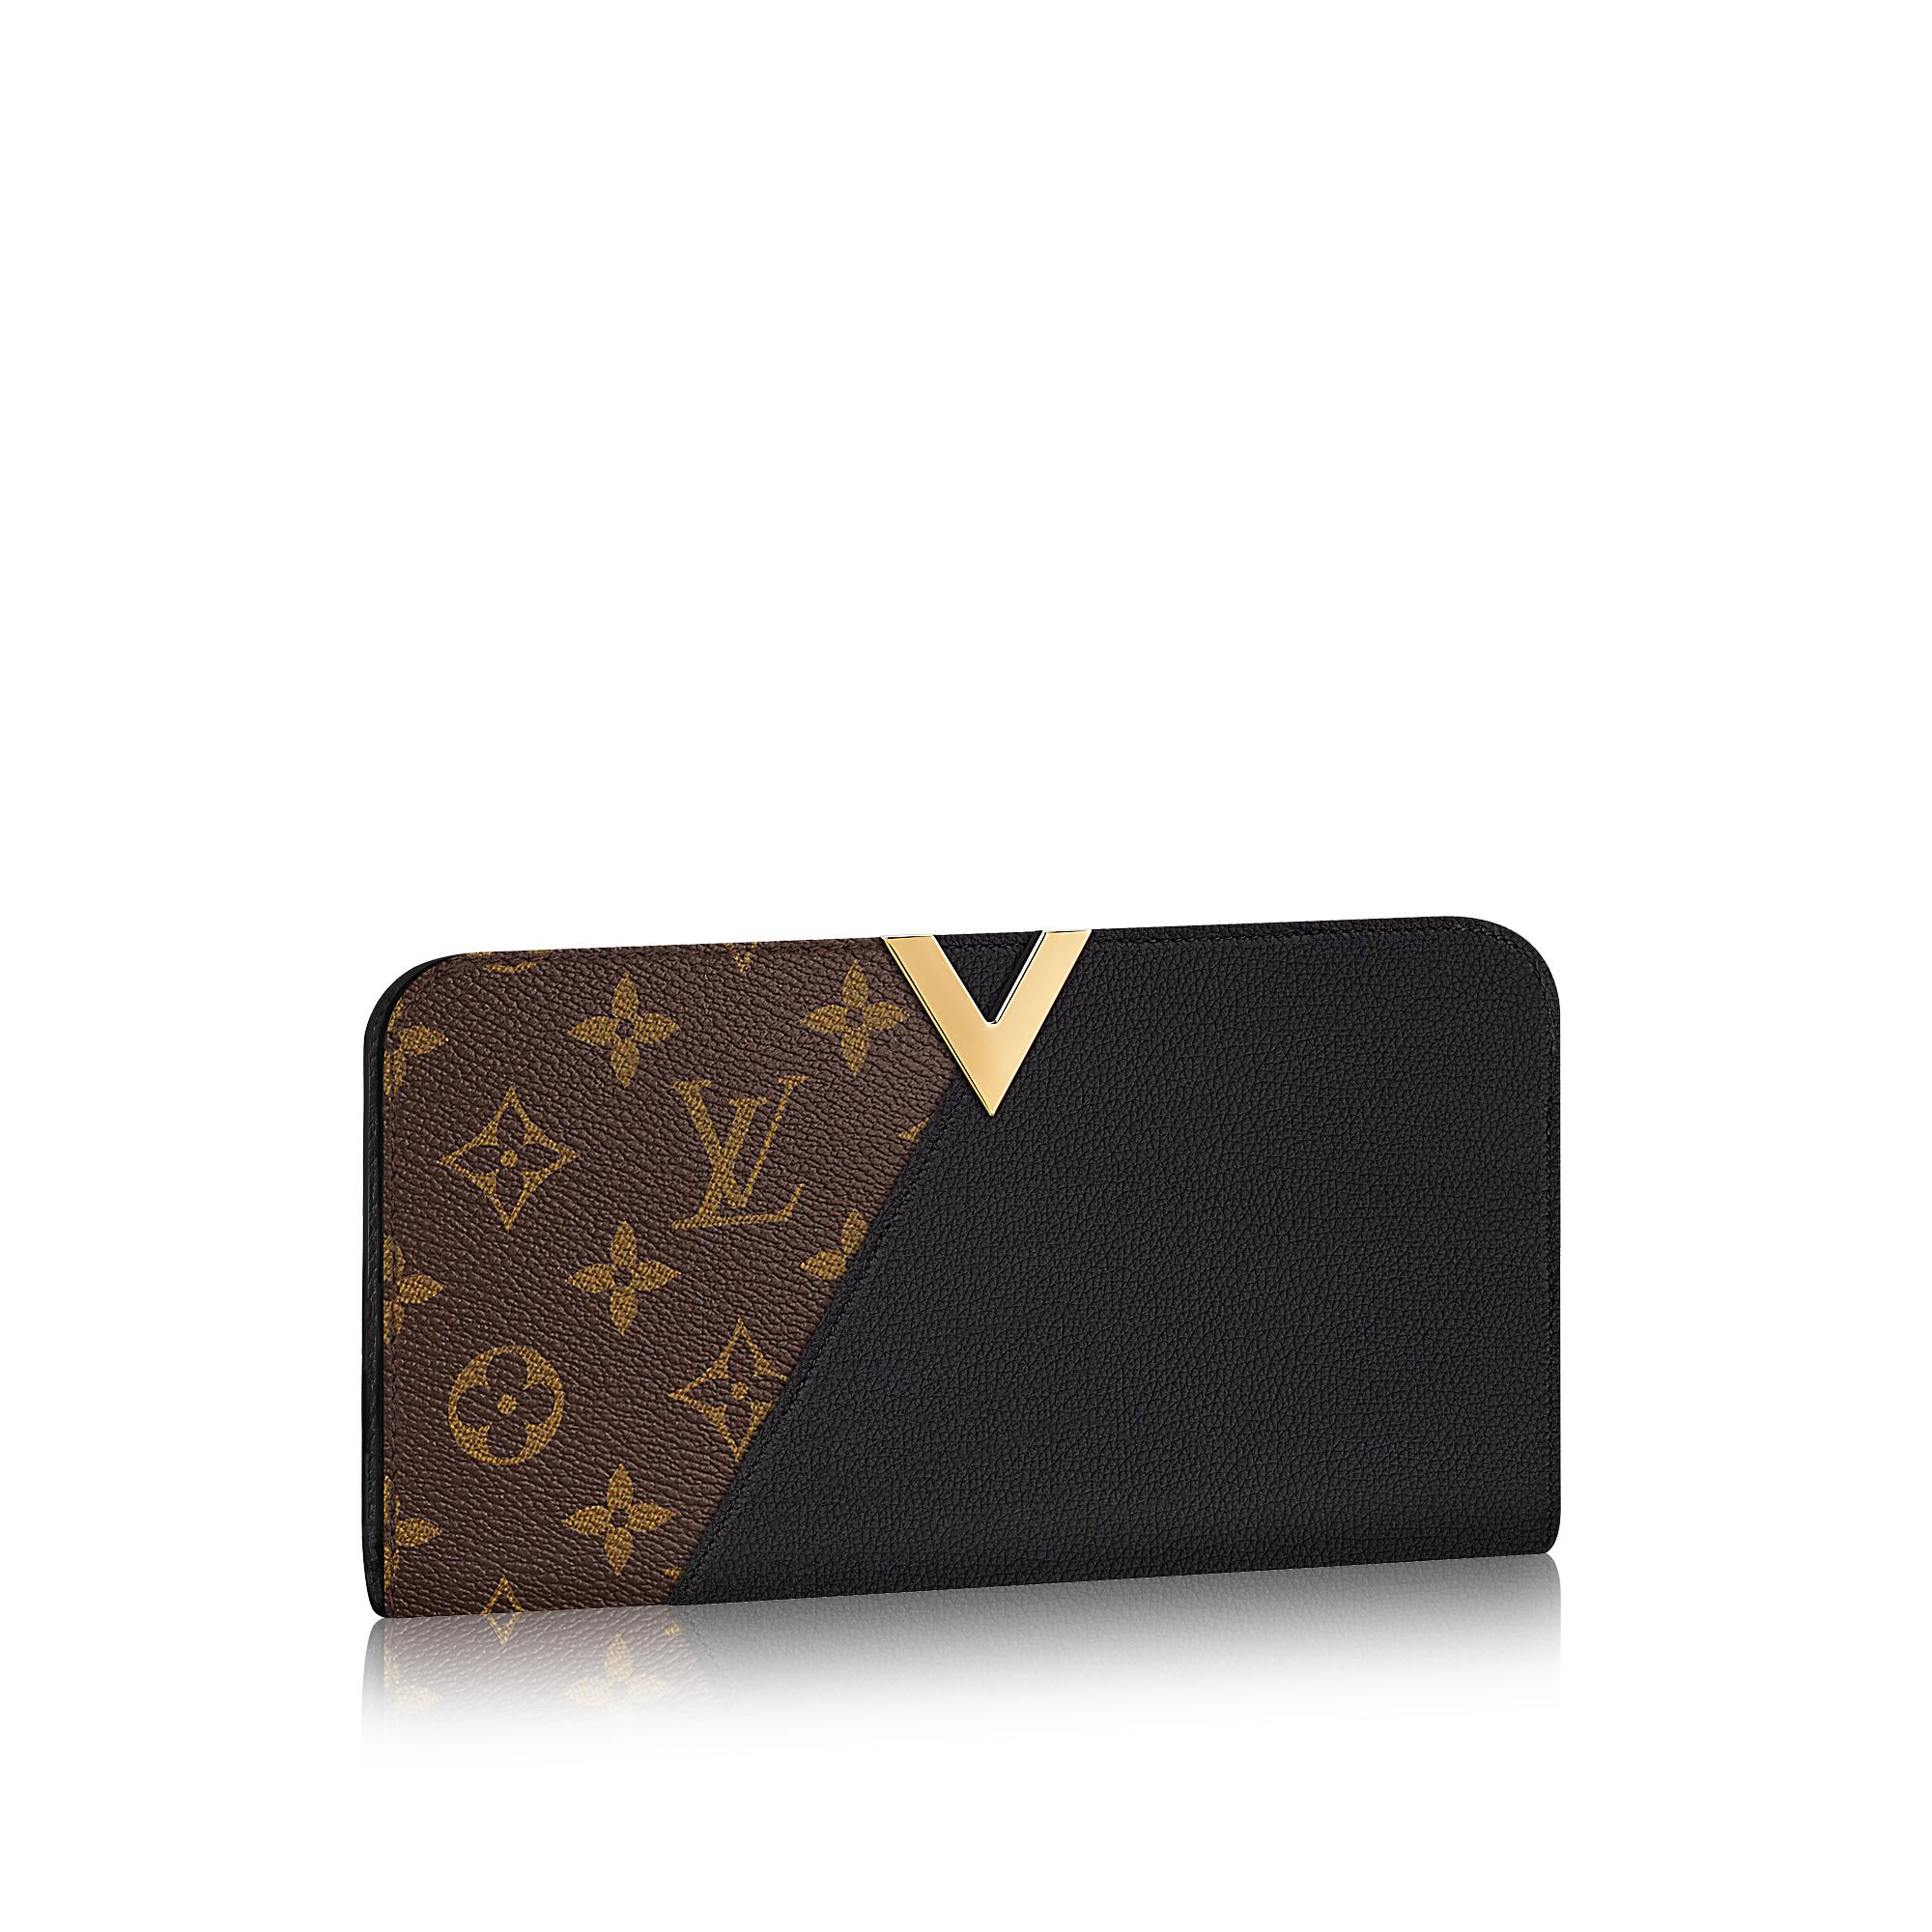 Discover Louis Vuitton Kimono Wallet via Louis Vuitton ...